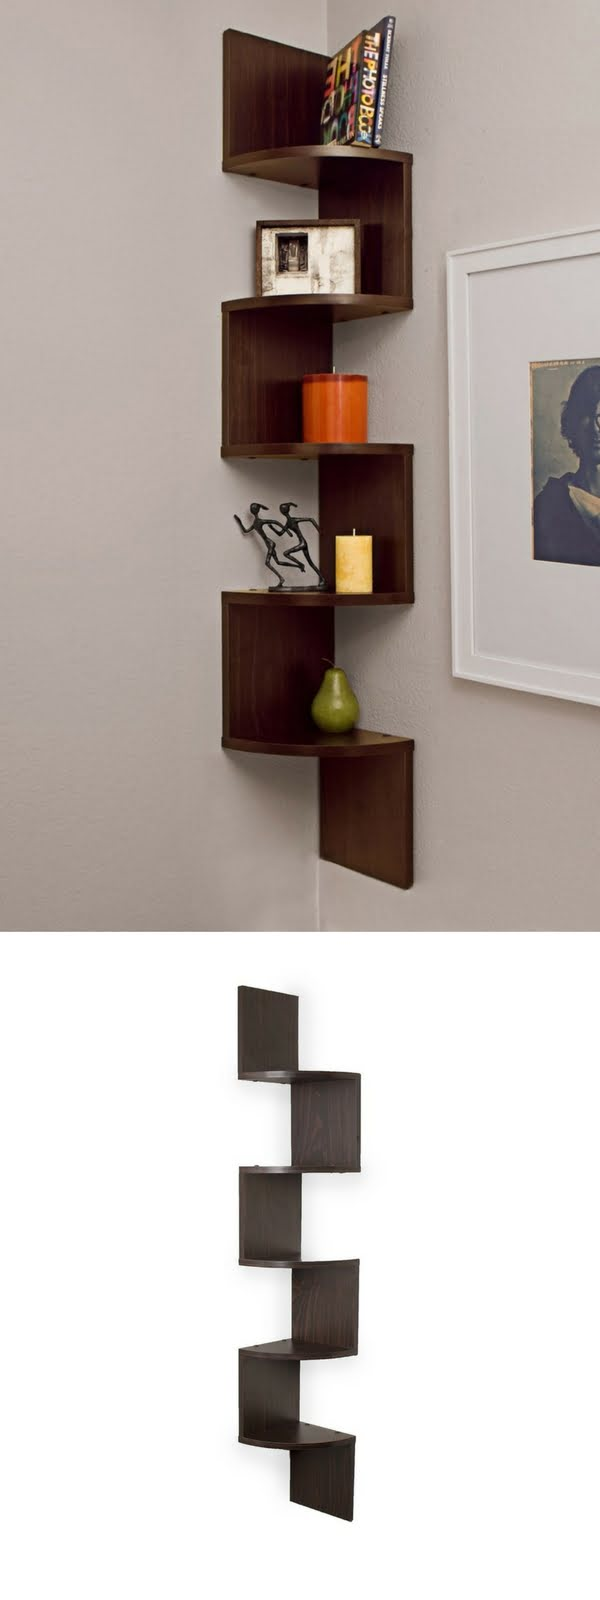 Check out the Corner Wall Mount Shelf